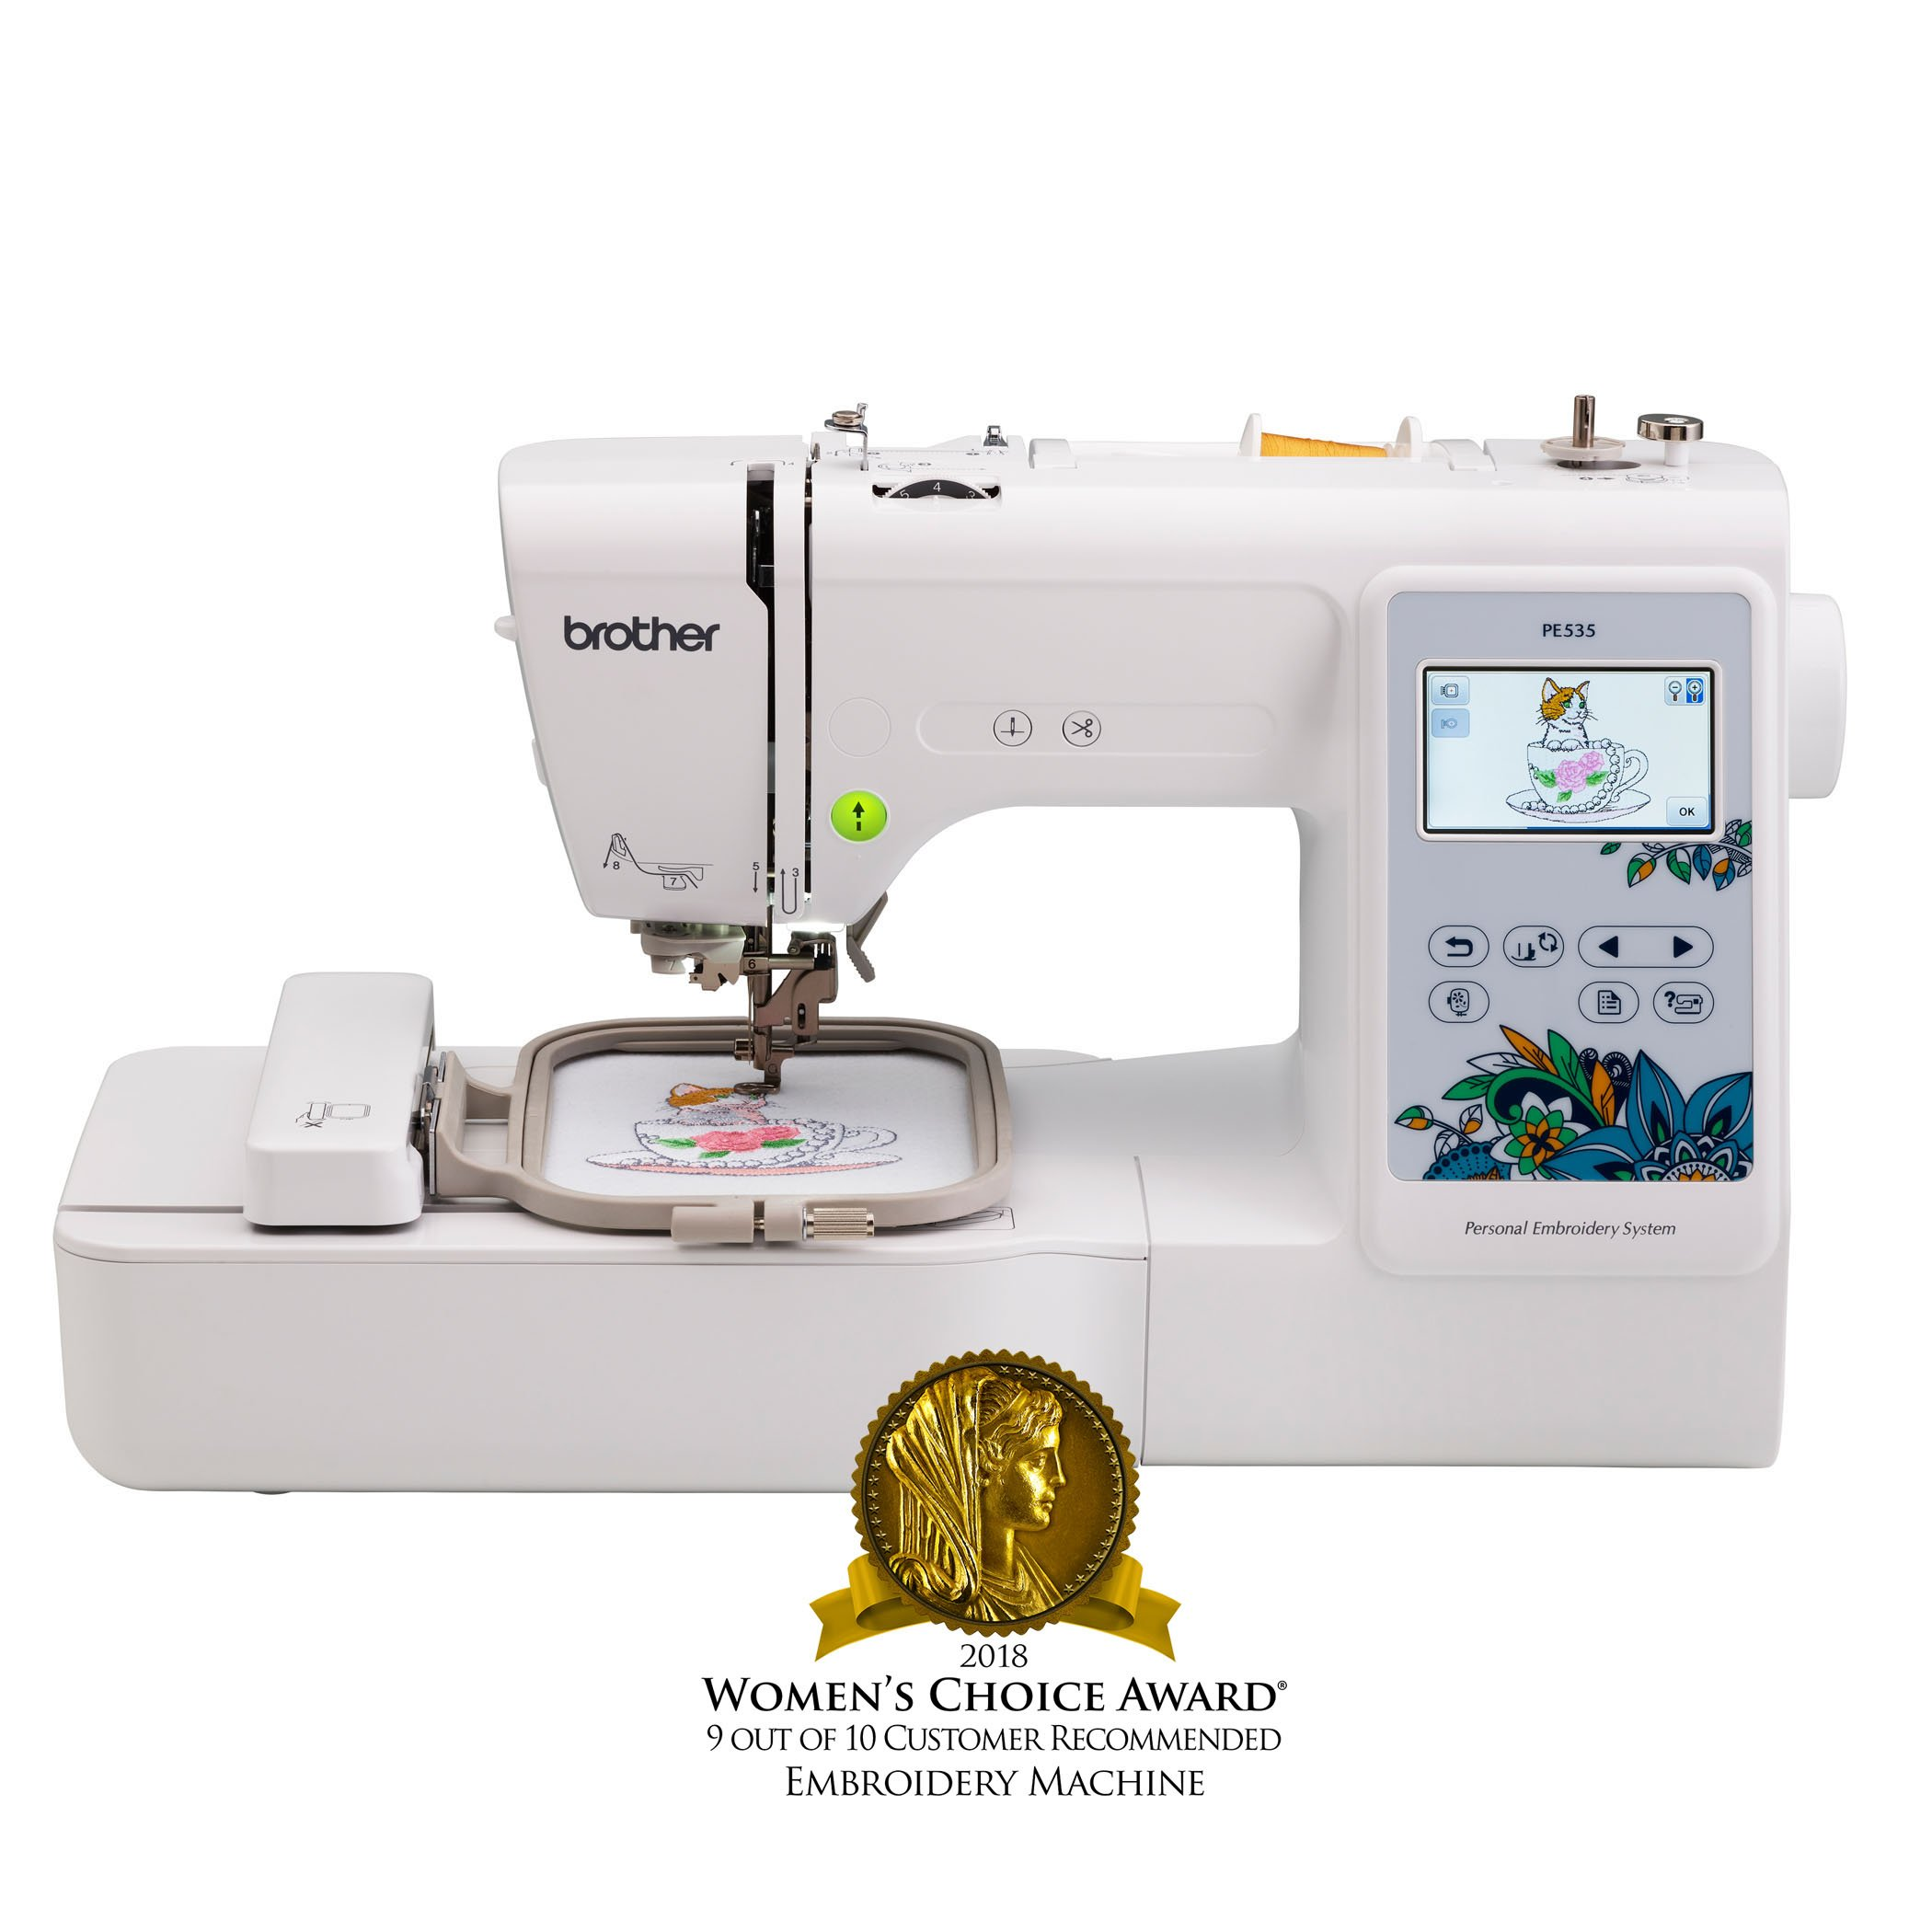 Brother Embroidery Machine, PE535, 80 Built-In Designs, Large LCD Color Touchscreen Display, 25-Year Limited Warranty, white by Brother